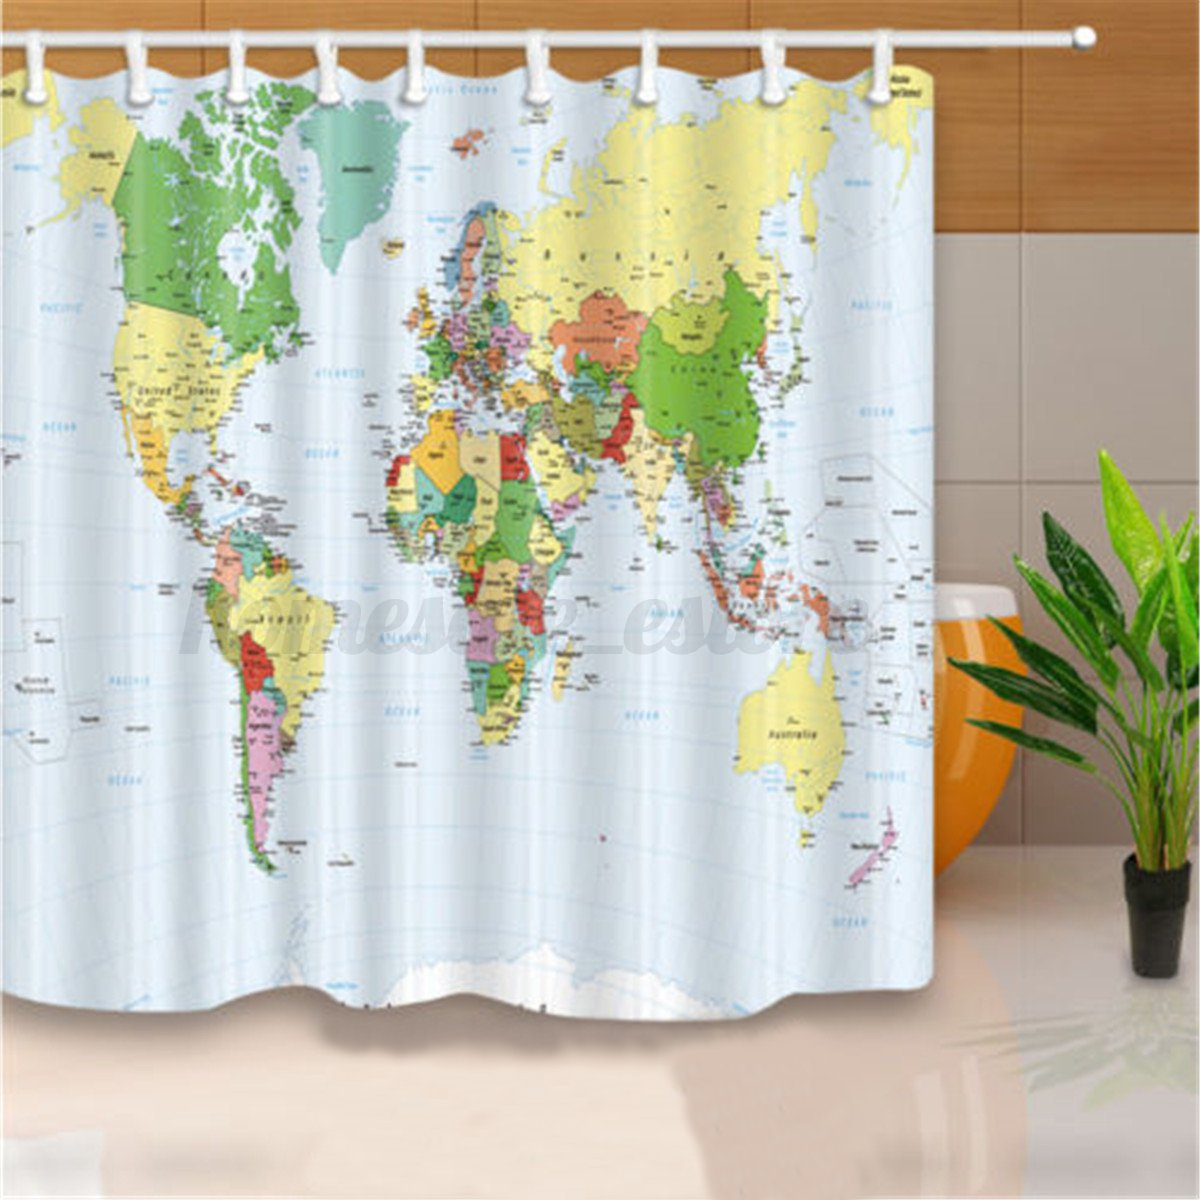 Details About 180x180cm Polyester World Map Bathroom Bath Waterproof Fabric Shower Curtain Set